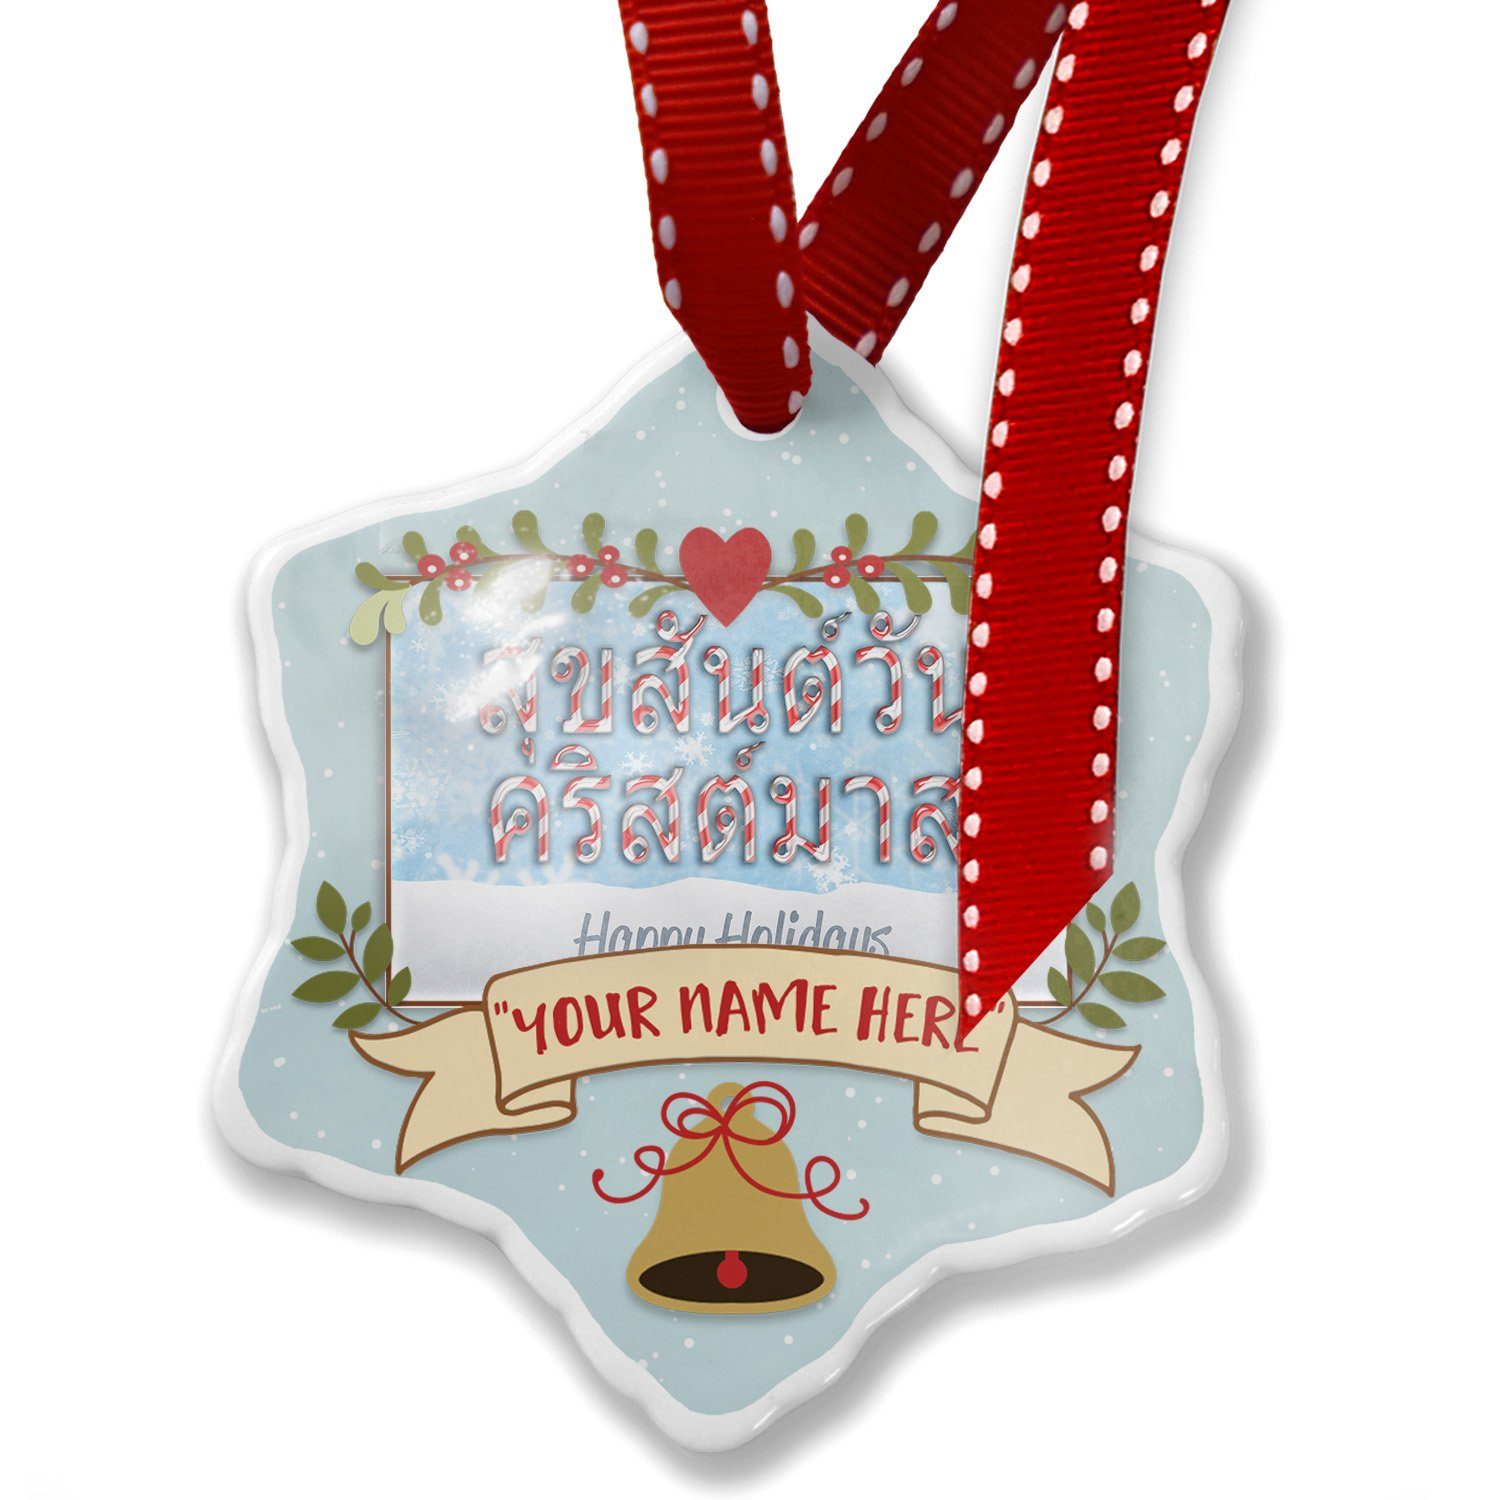 Add Your Own Custom Name, Merry Christmas in Thai from Thailand Christmas Ornament NEONBLOND by NEONBLOND